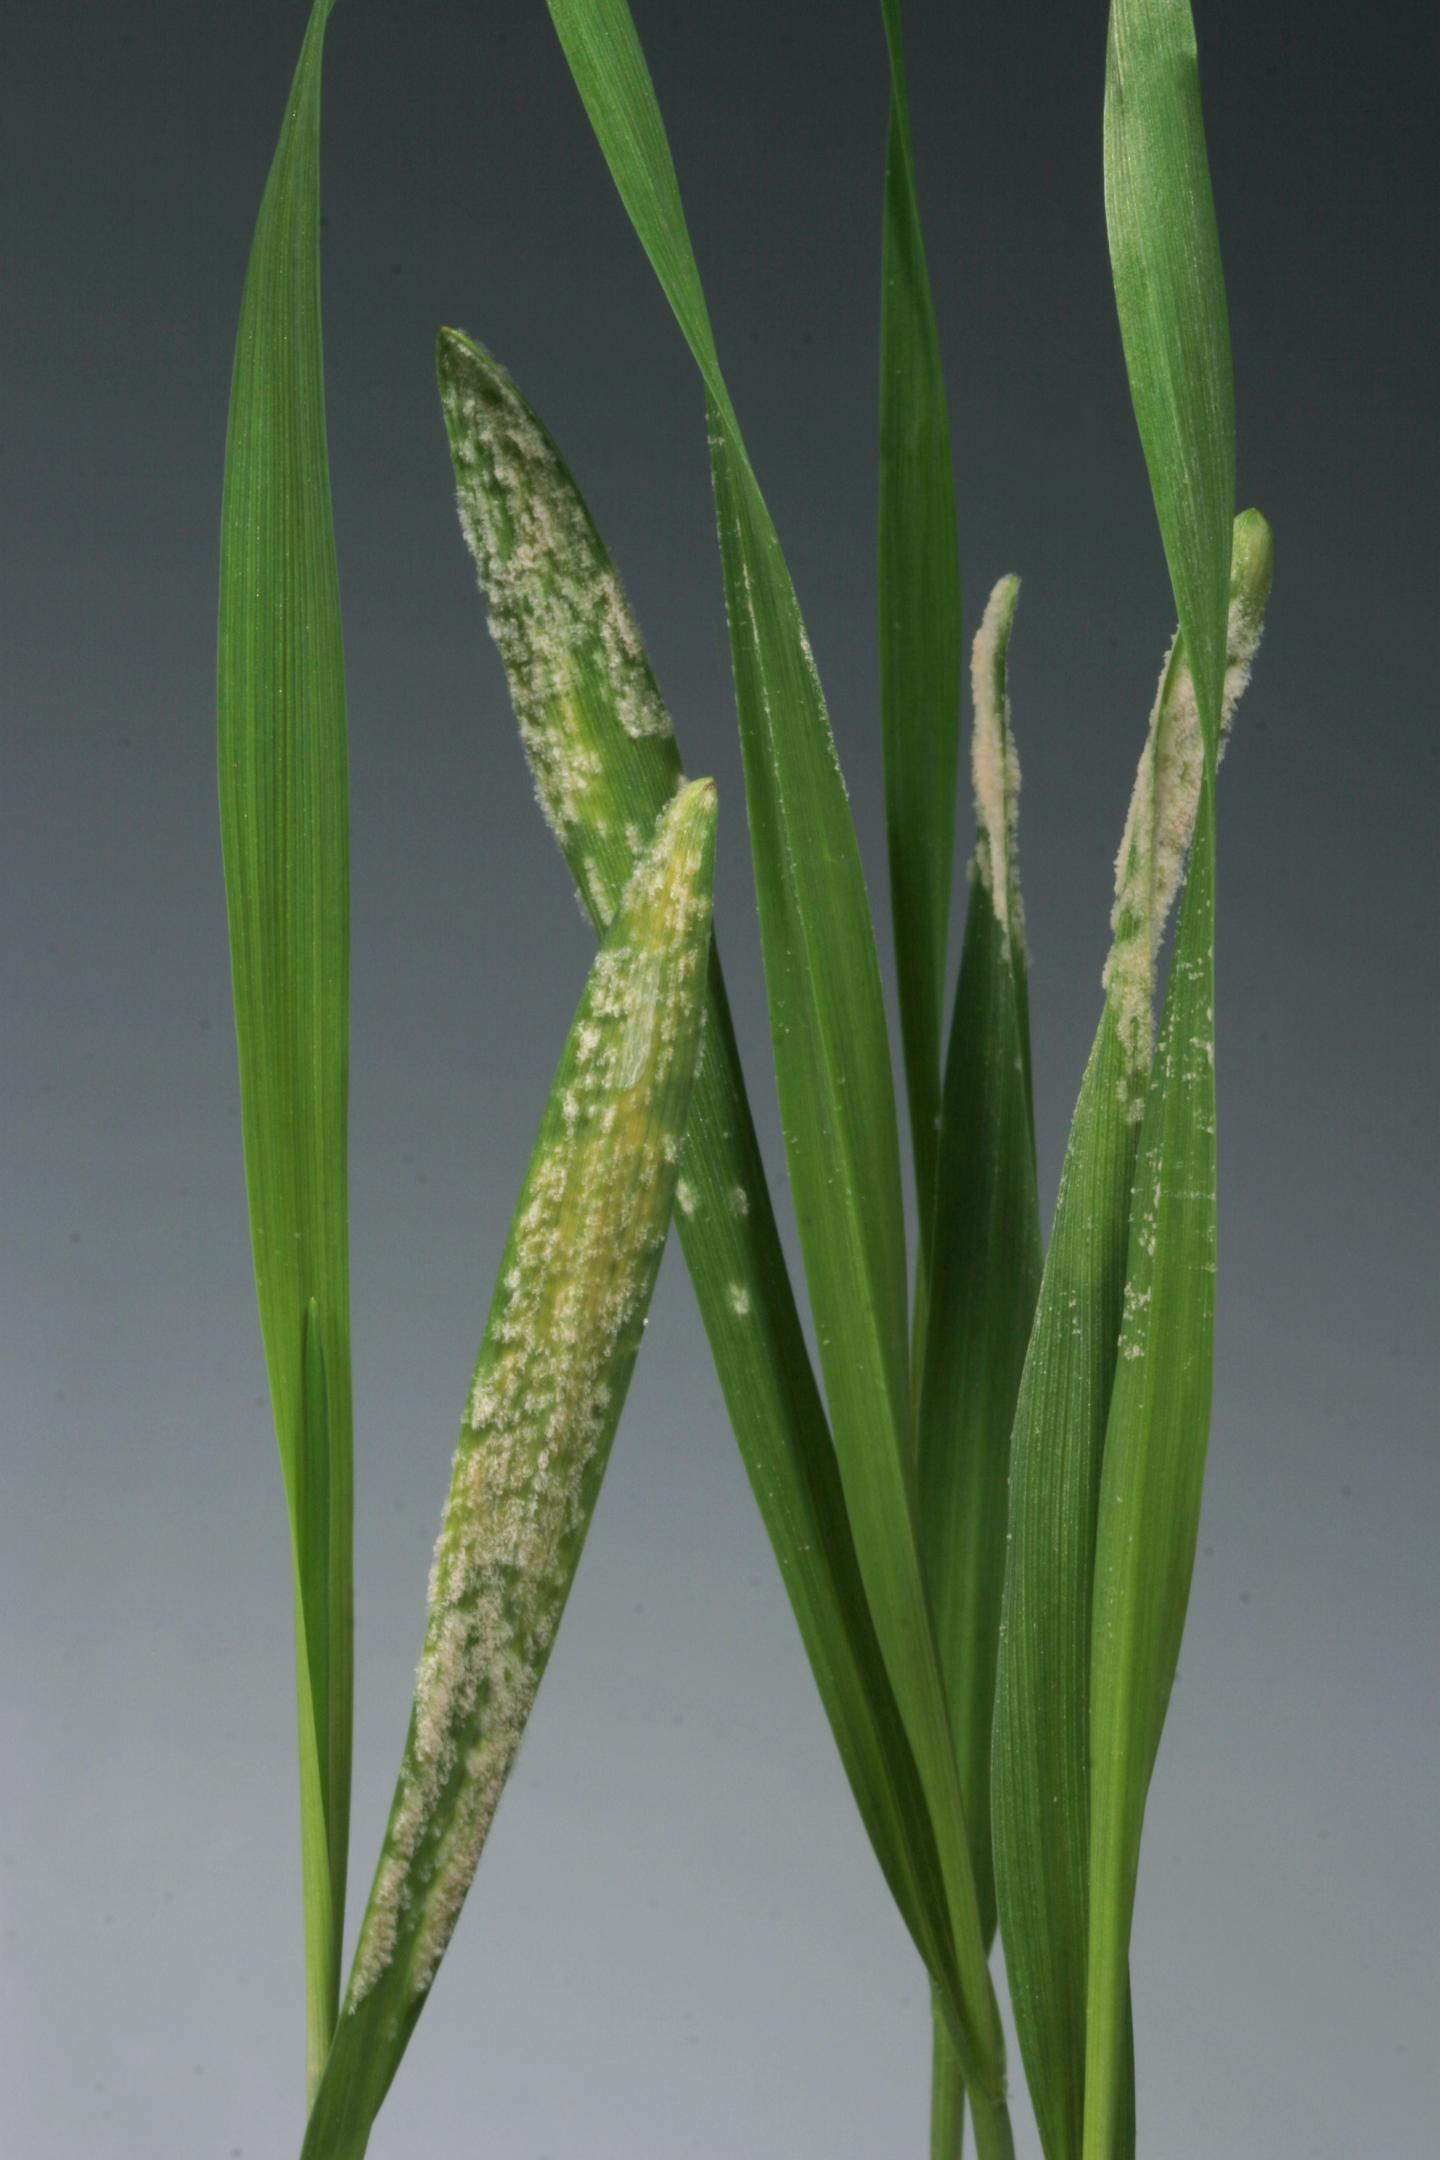 Barley Leaves Infected with Powdery Mildew